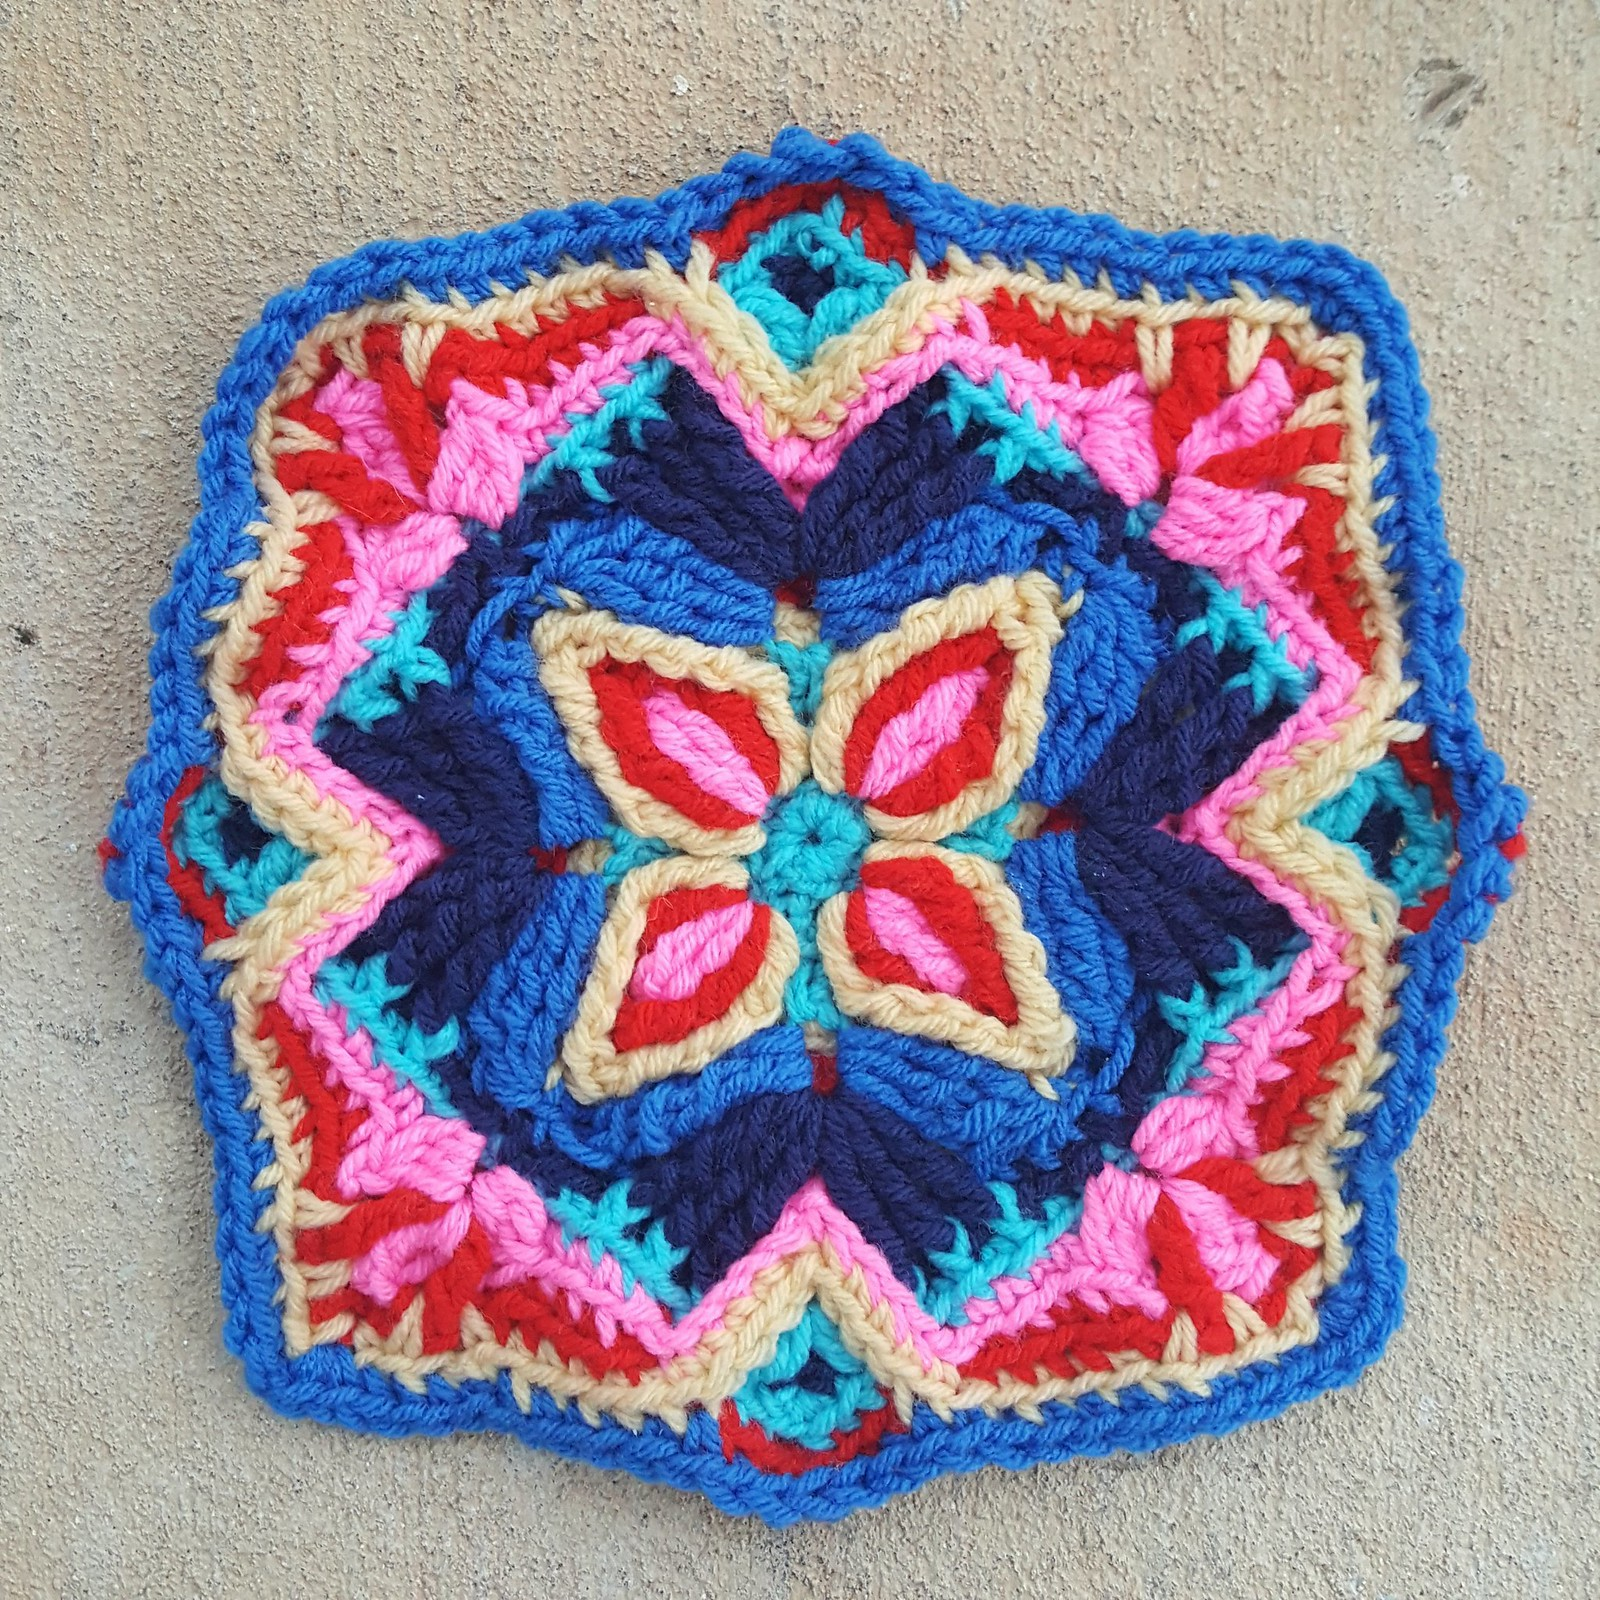 A multicolor overlay crochet textured square